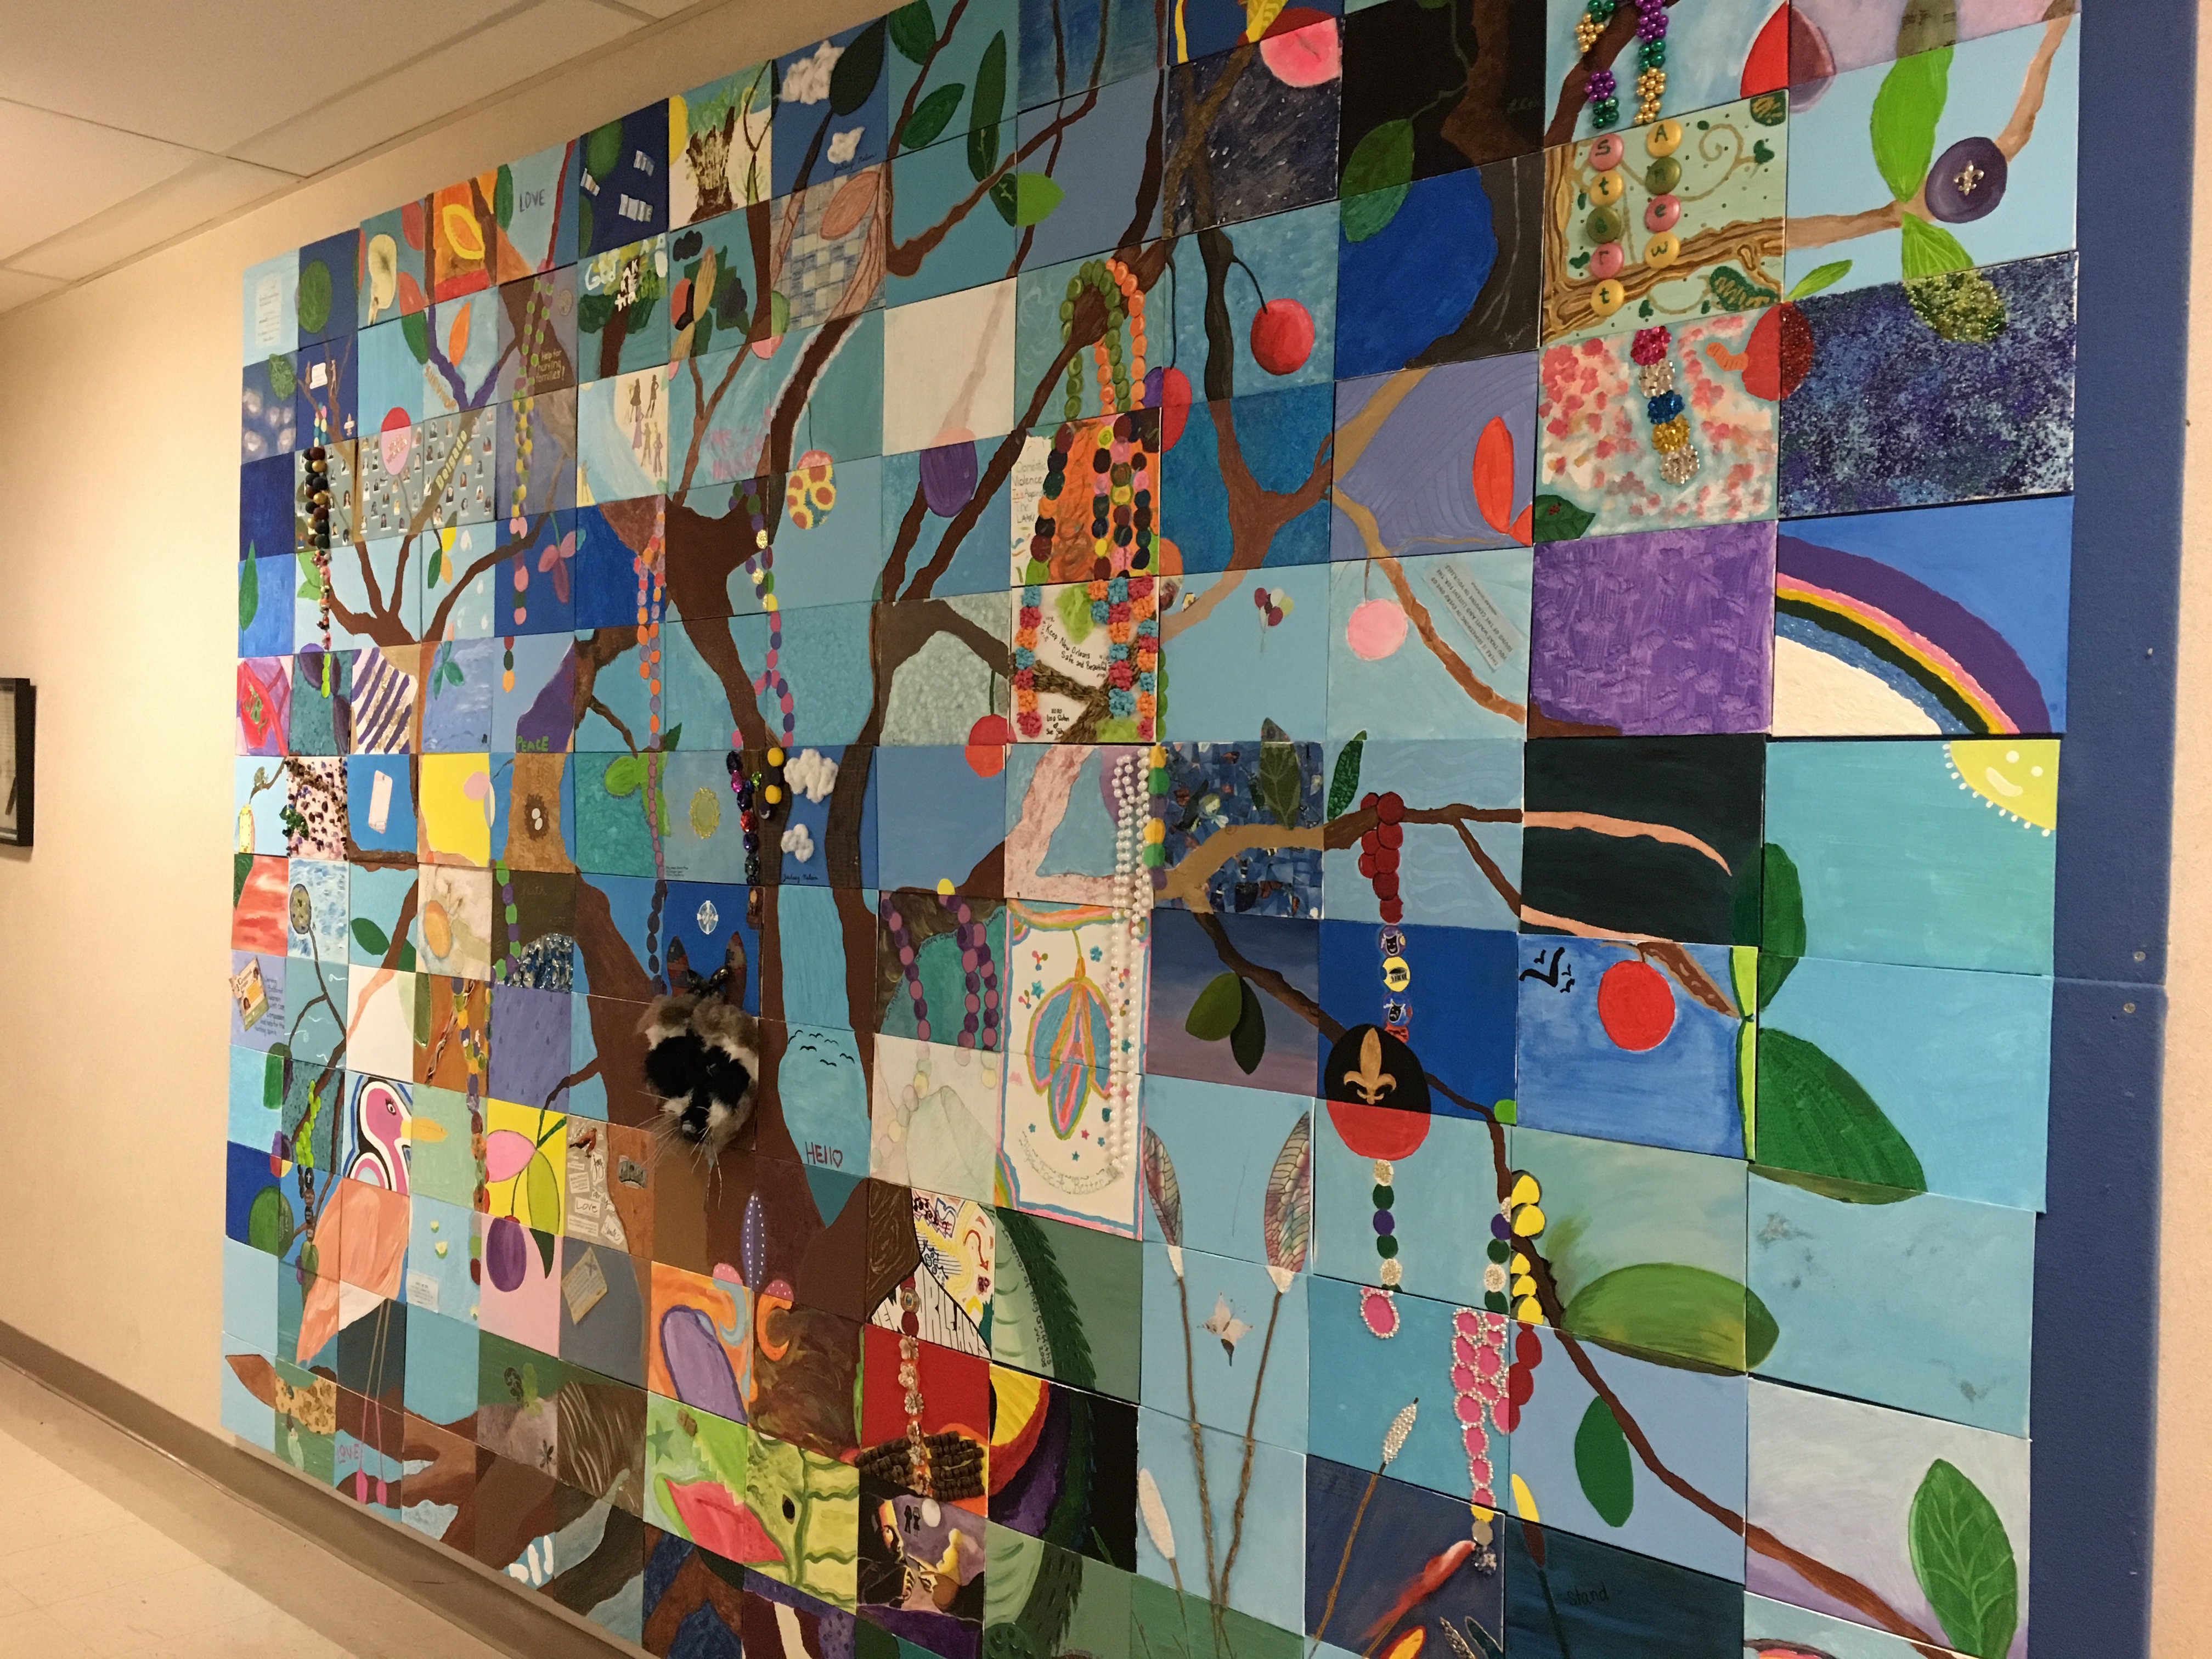 A quilt made by survivors of sexual assault hangs on the wall of the New Orleans Family Justice Center. Sexual assault remains one of the most underreported crimes. Photo credit: Lester Duhe